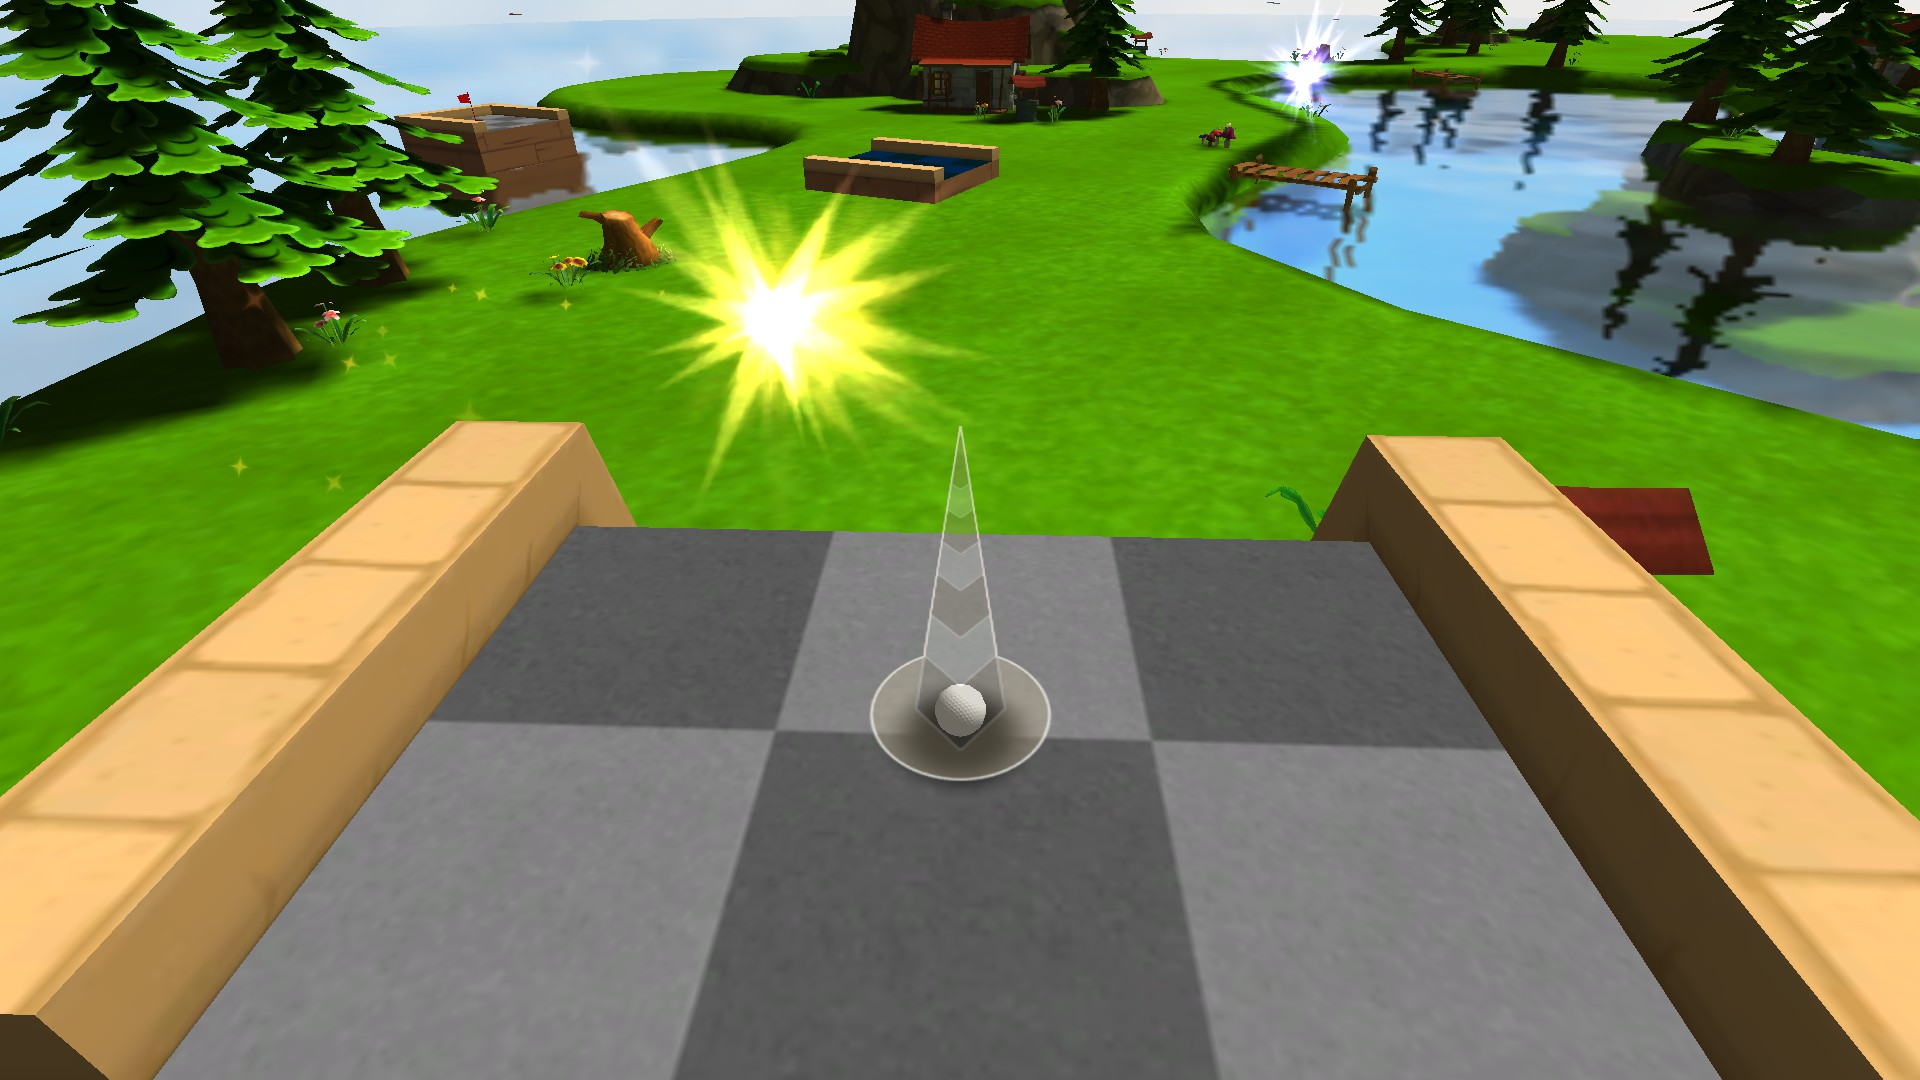 From the Jinxed course: the Orange portal moves, the trampoline blinks, and if you don't hit the exact right speed your ball will miss the hole...and they thought this was fun?